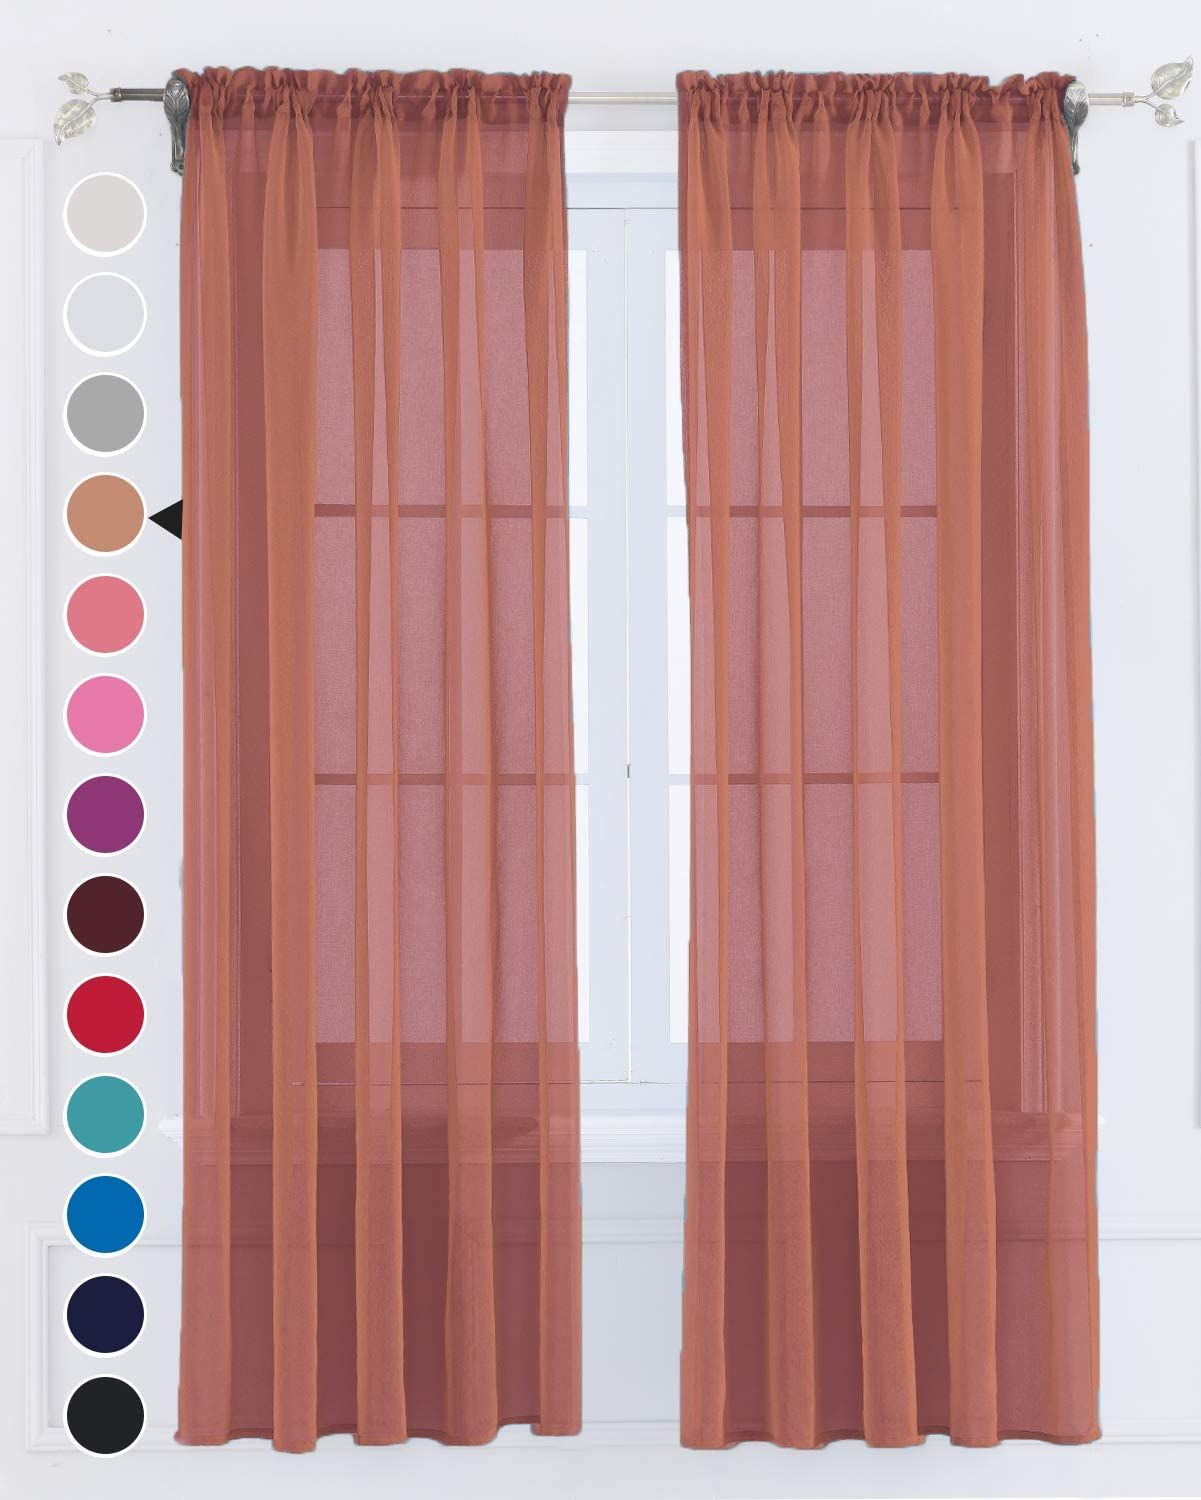 Semi Terracotta Sheer Curtains 84 inches Long 2 Panels Set for Living Room Privacy Window Drapes Solid Tulle Voile Light Filtering Rod Pocket Yard Patio Villa Parlor Kitchen(Terracotta,W52 X L84)